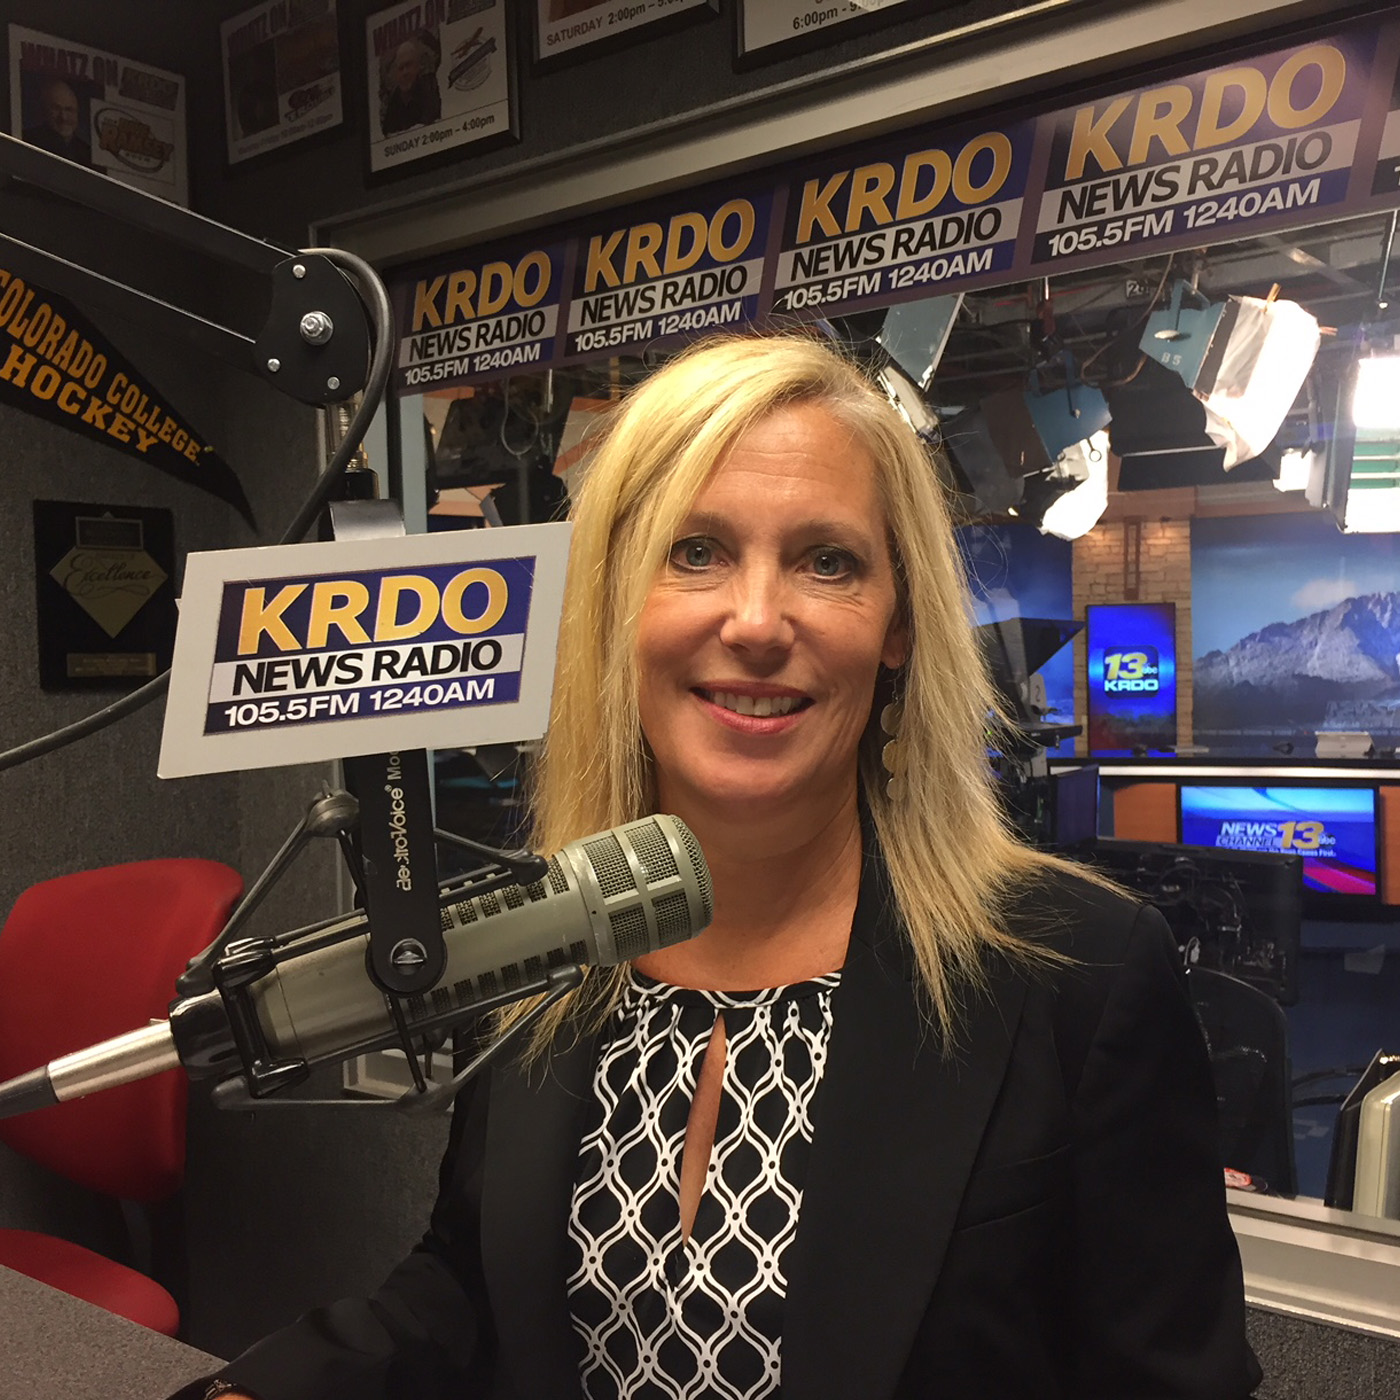 KRDO's Morning News - June 5, 2019